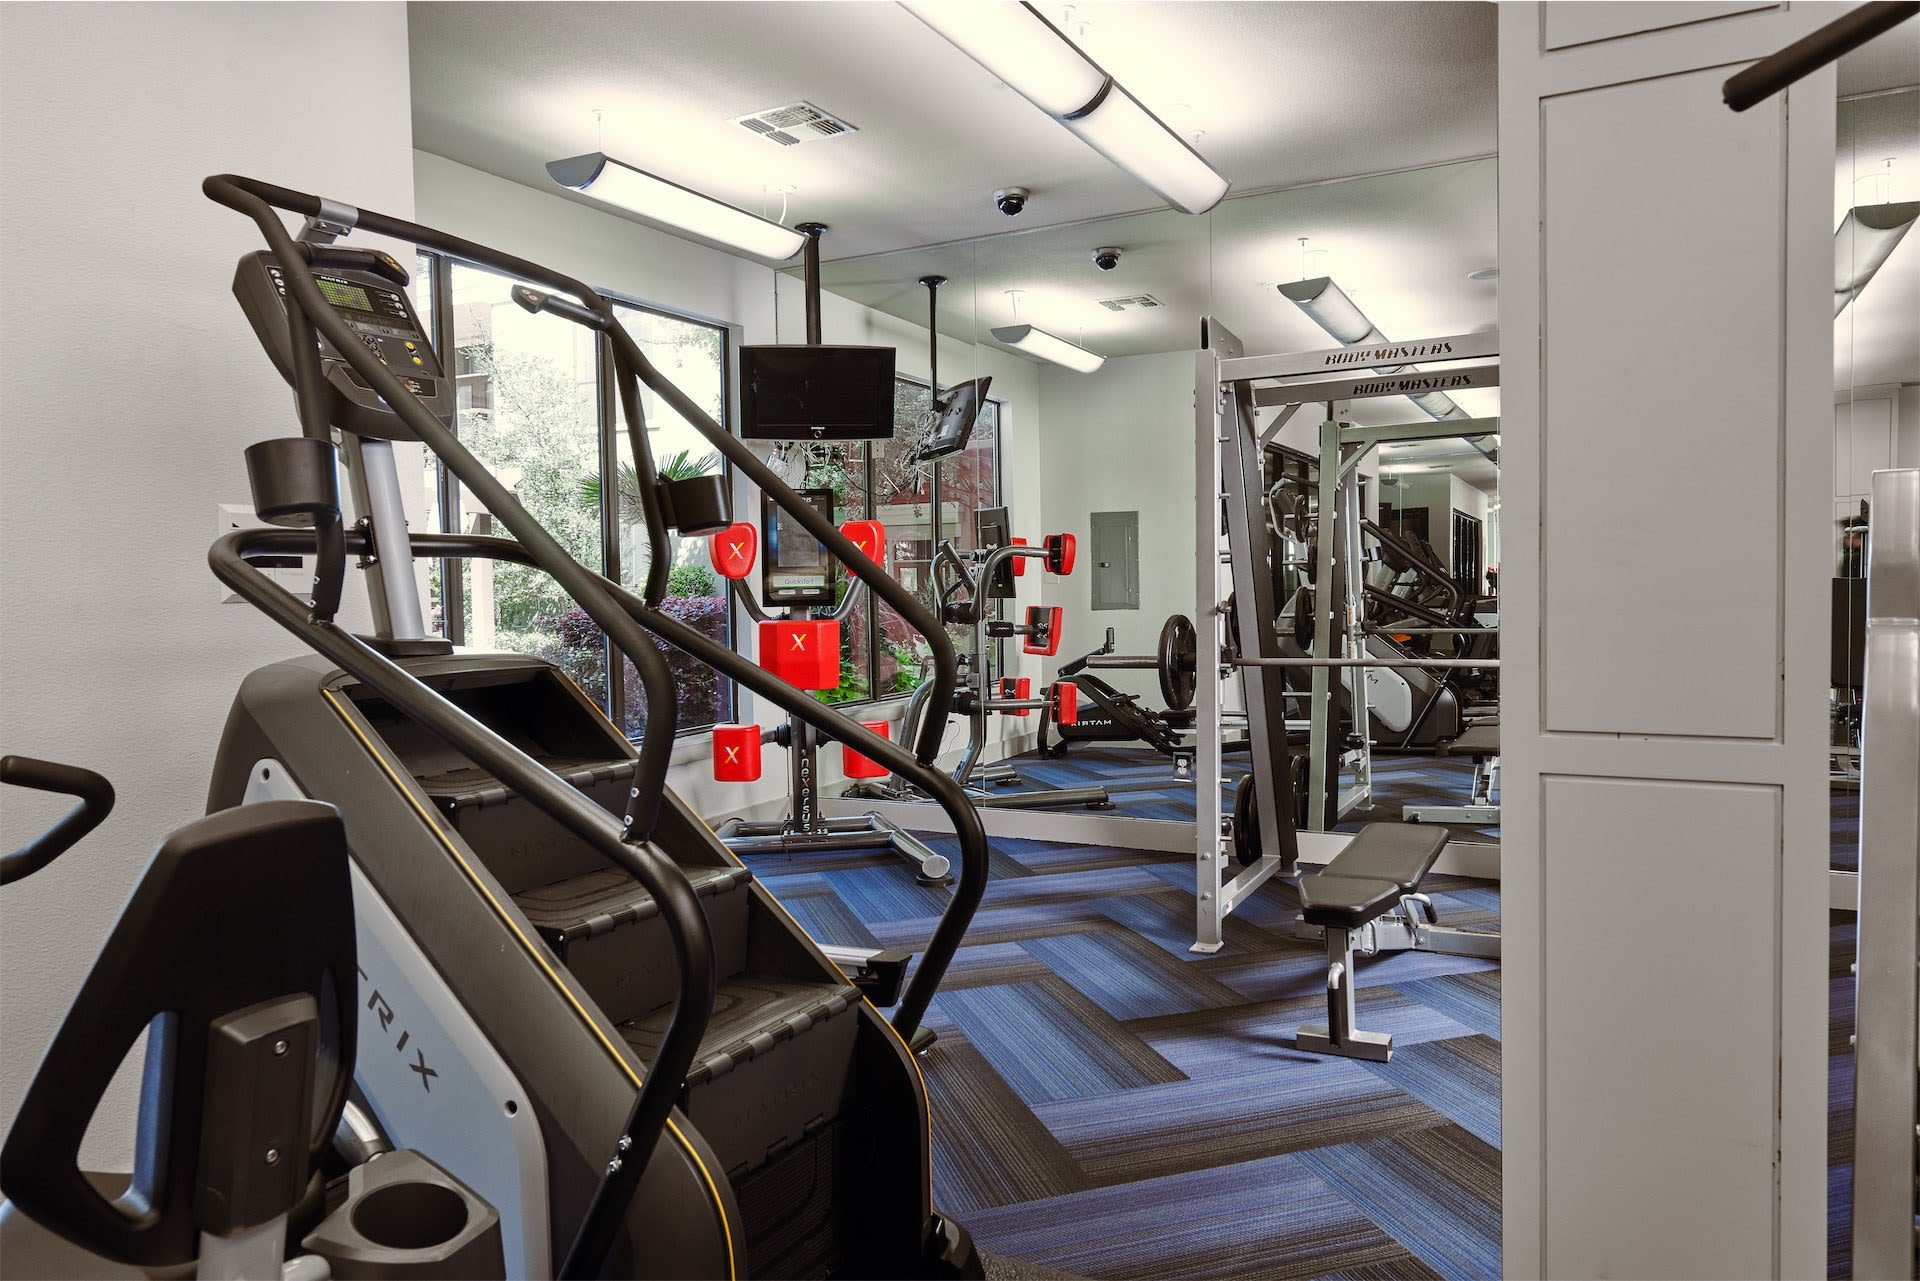 Stair step workout equipment at Seville Uptown in Dallas, Texas